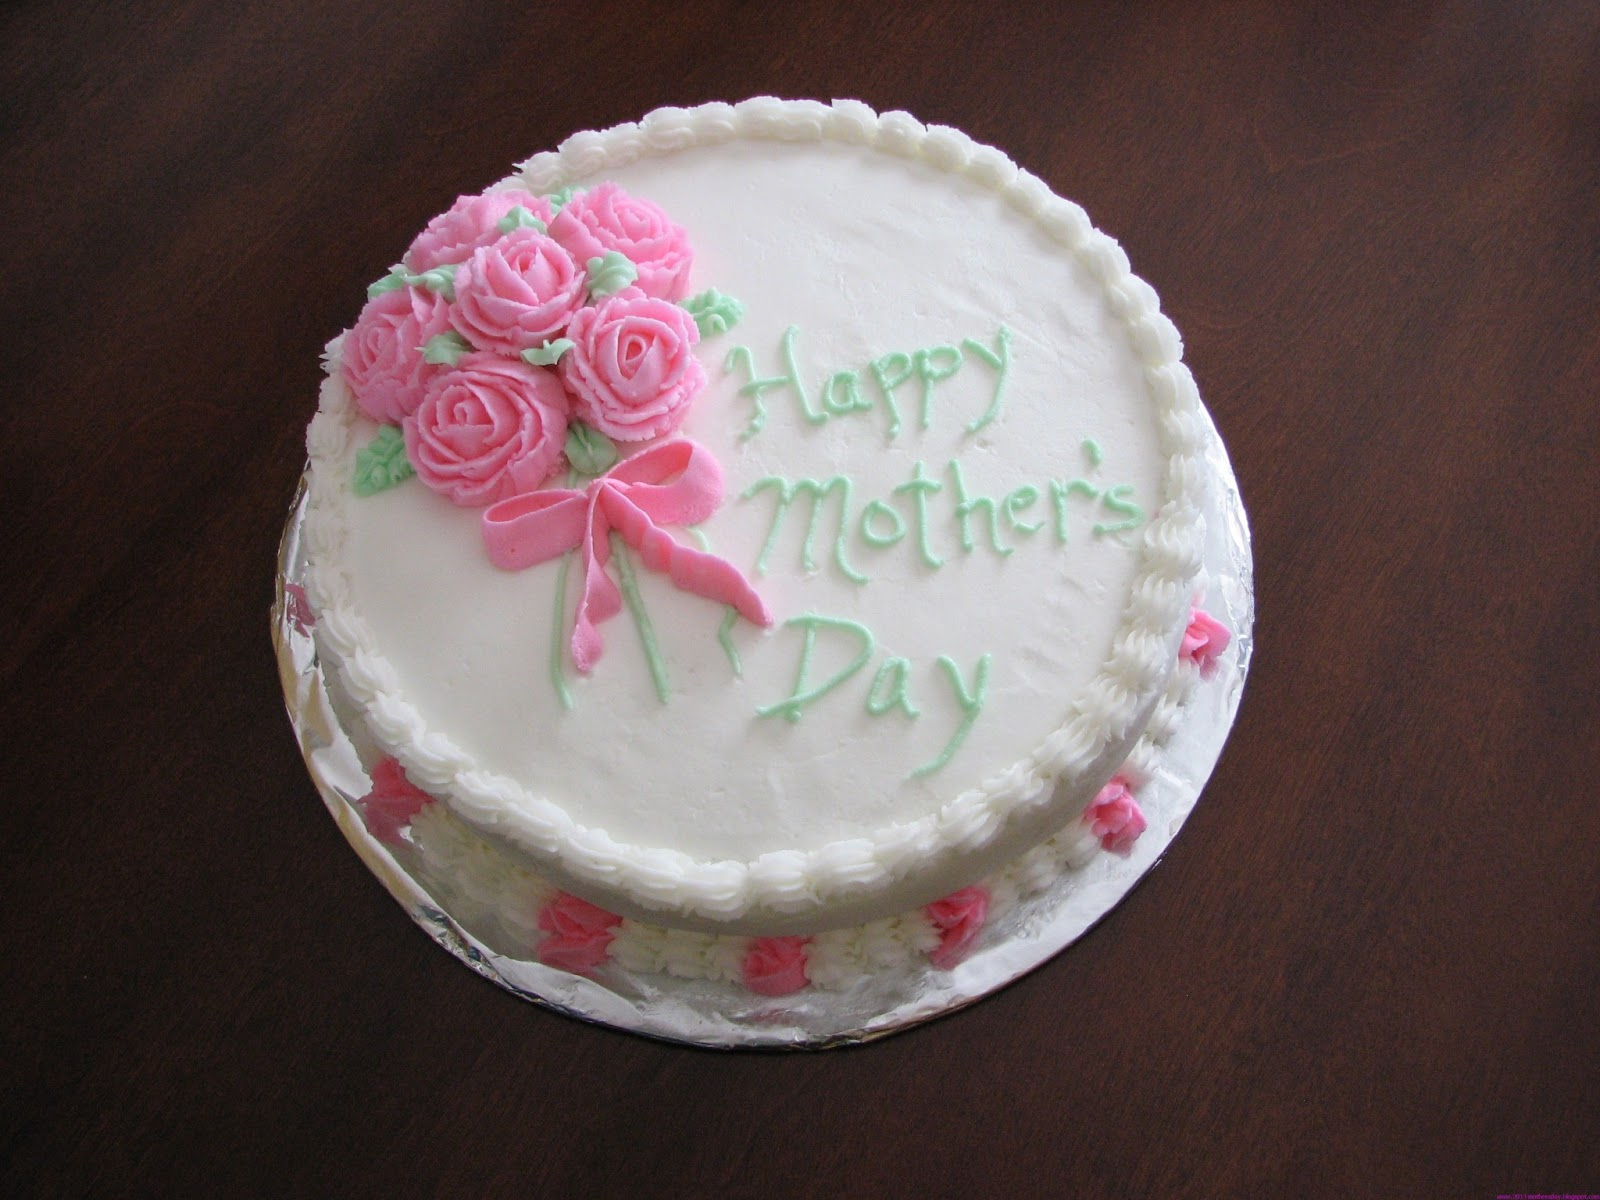 Best Cake Designs For Mother : Wallpaper Free Download: Mothers day cake Decoration And ...